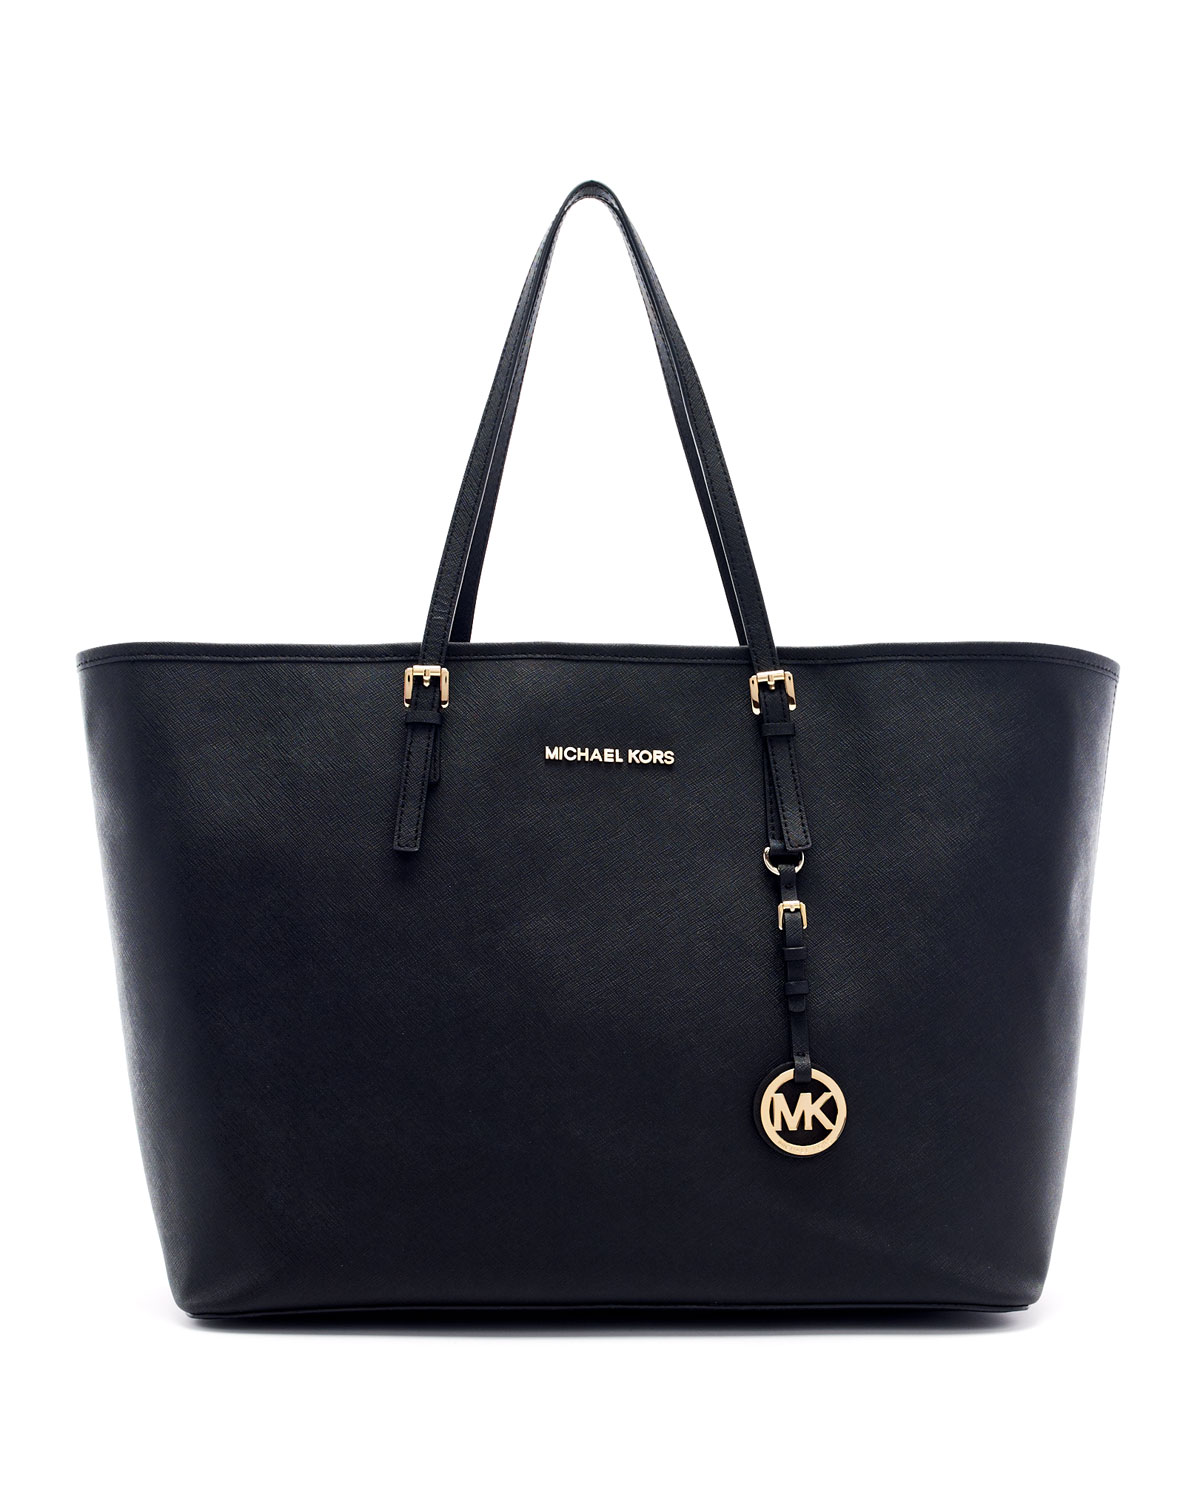 michael michael kors medium jet set saffiano travel tote in black lyst. Black Bedroom Furniture Sets. Home Design Ideas